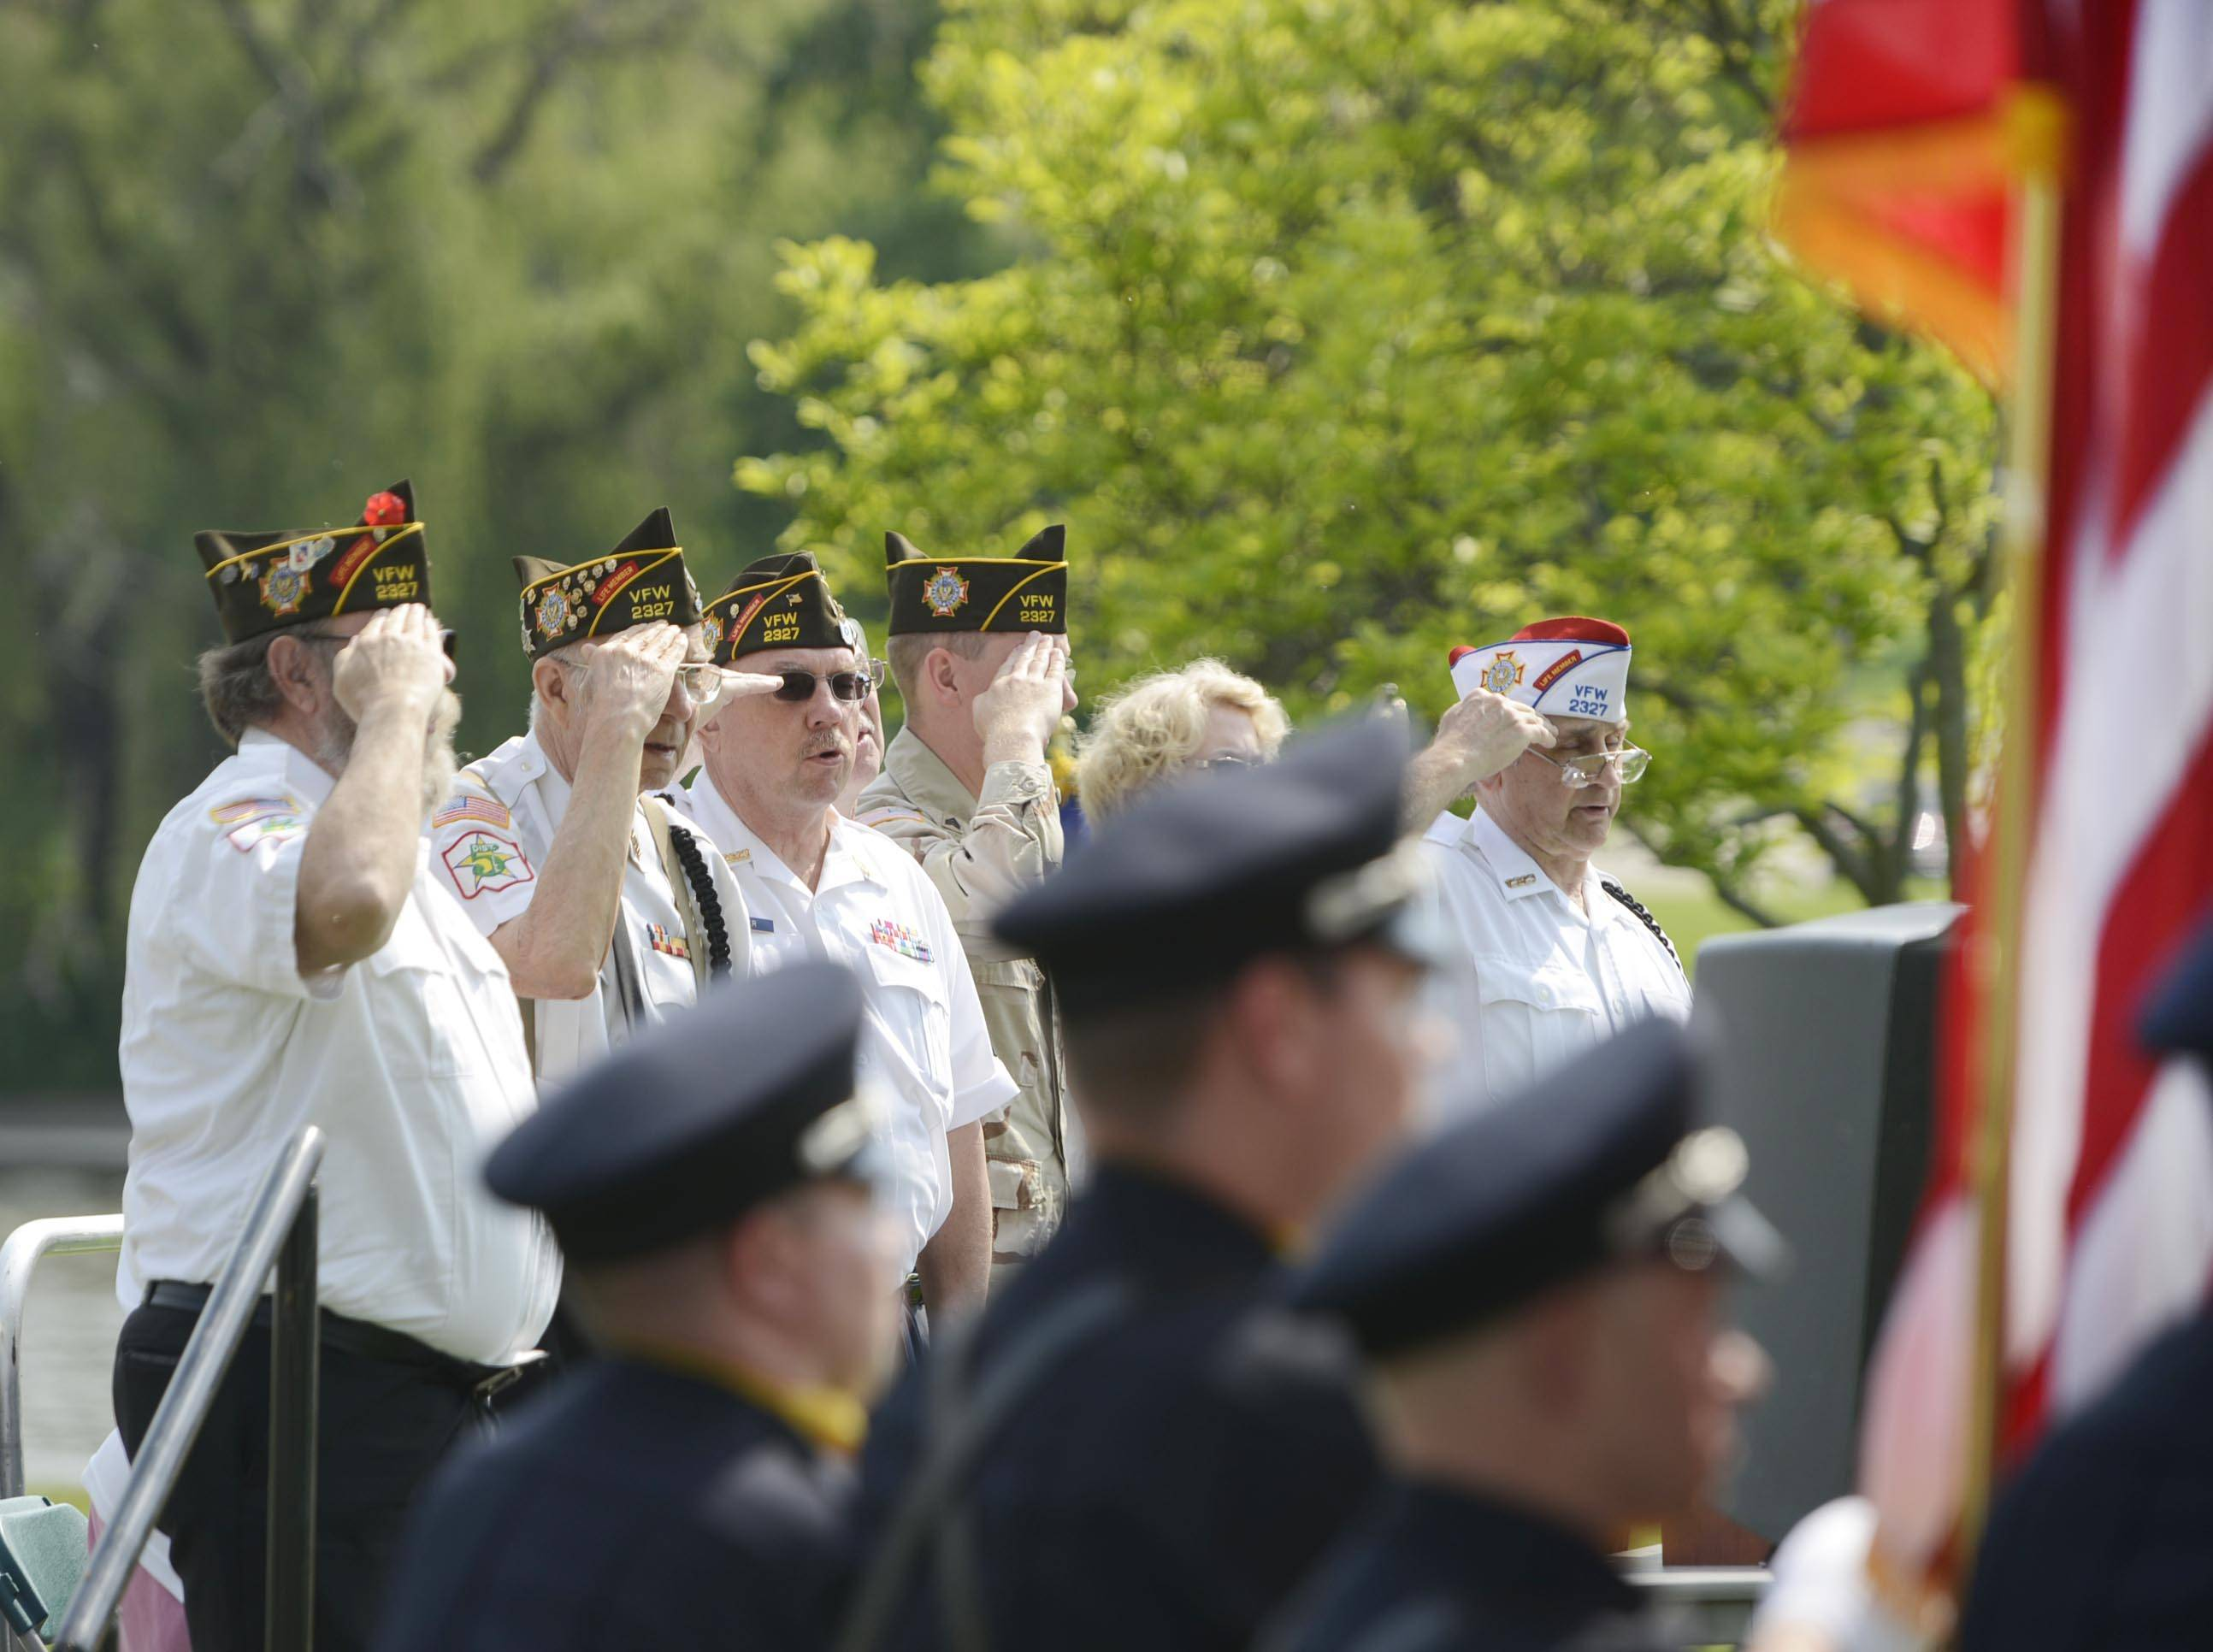 VFW Post 2327 Honor Guard salutes as the colors are posted at South Elgin's Memorial Day event at Panton Mill Park Monday.